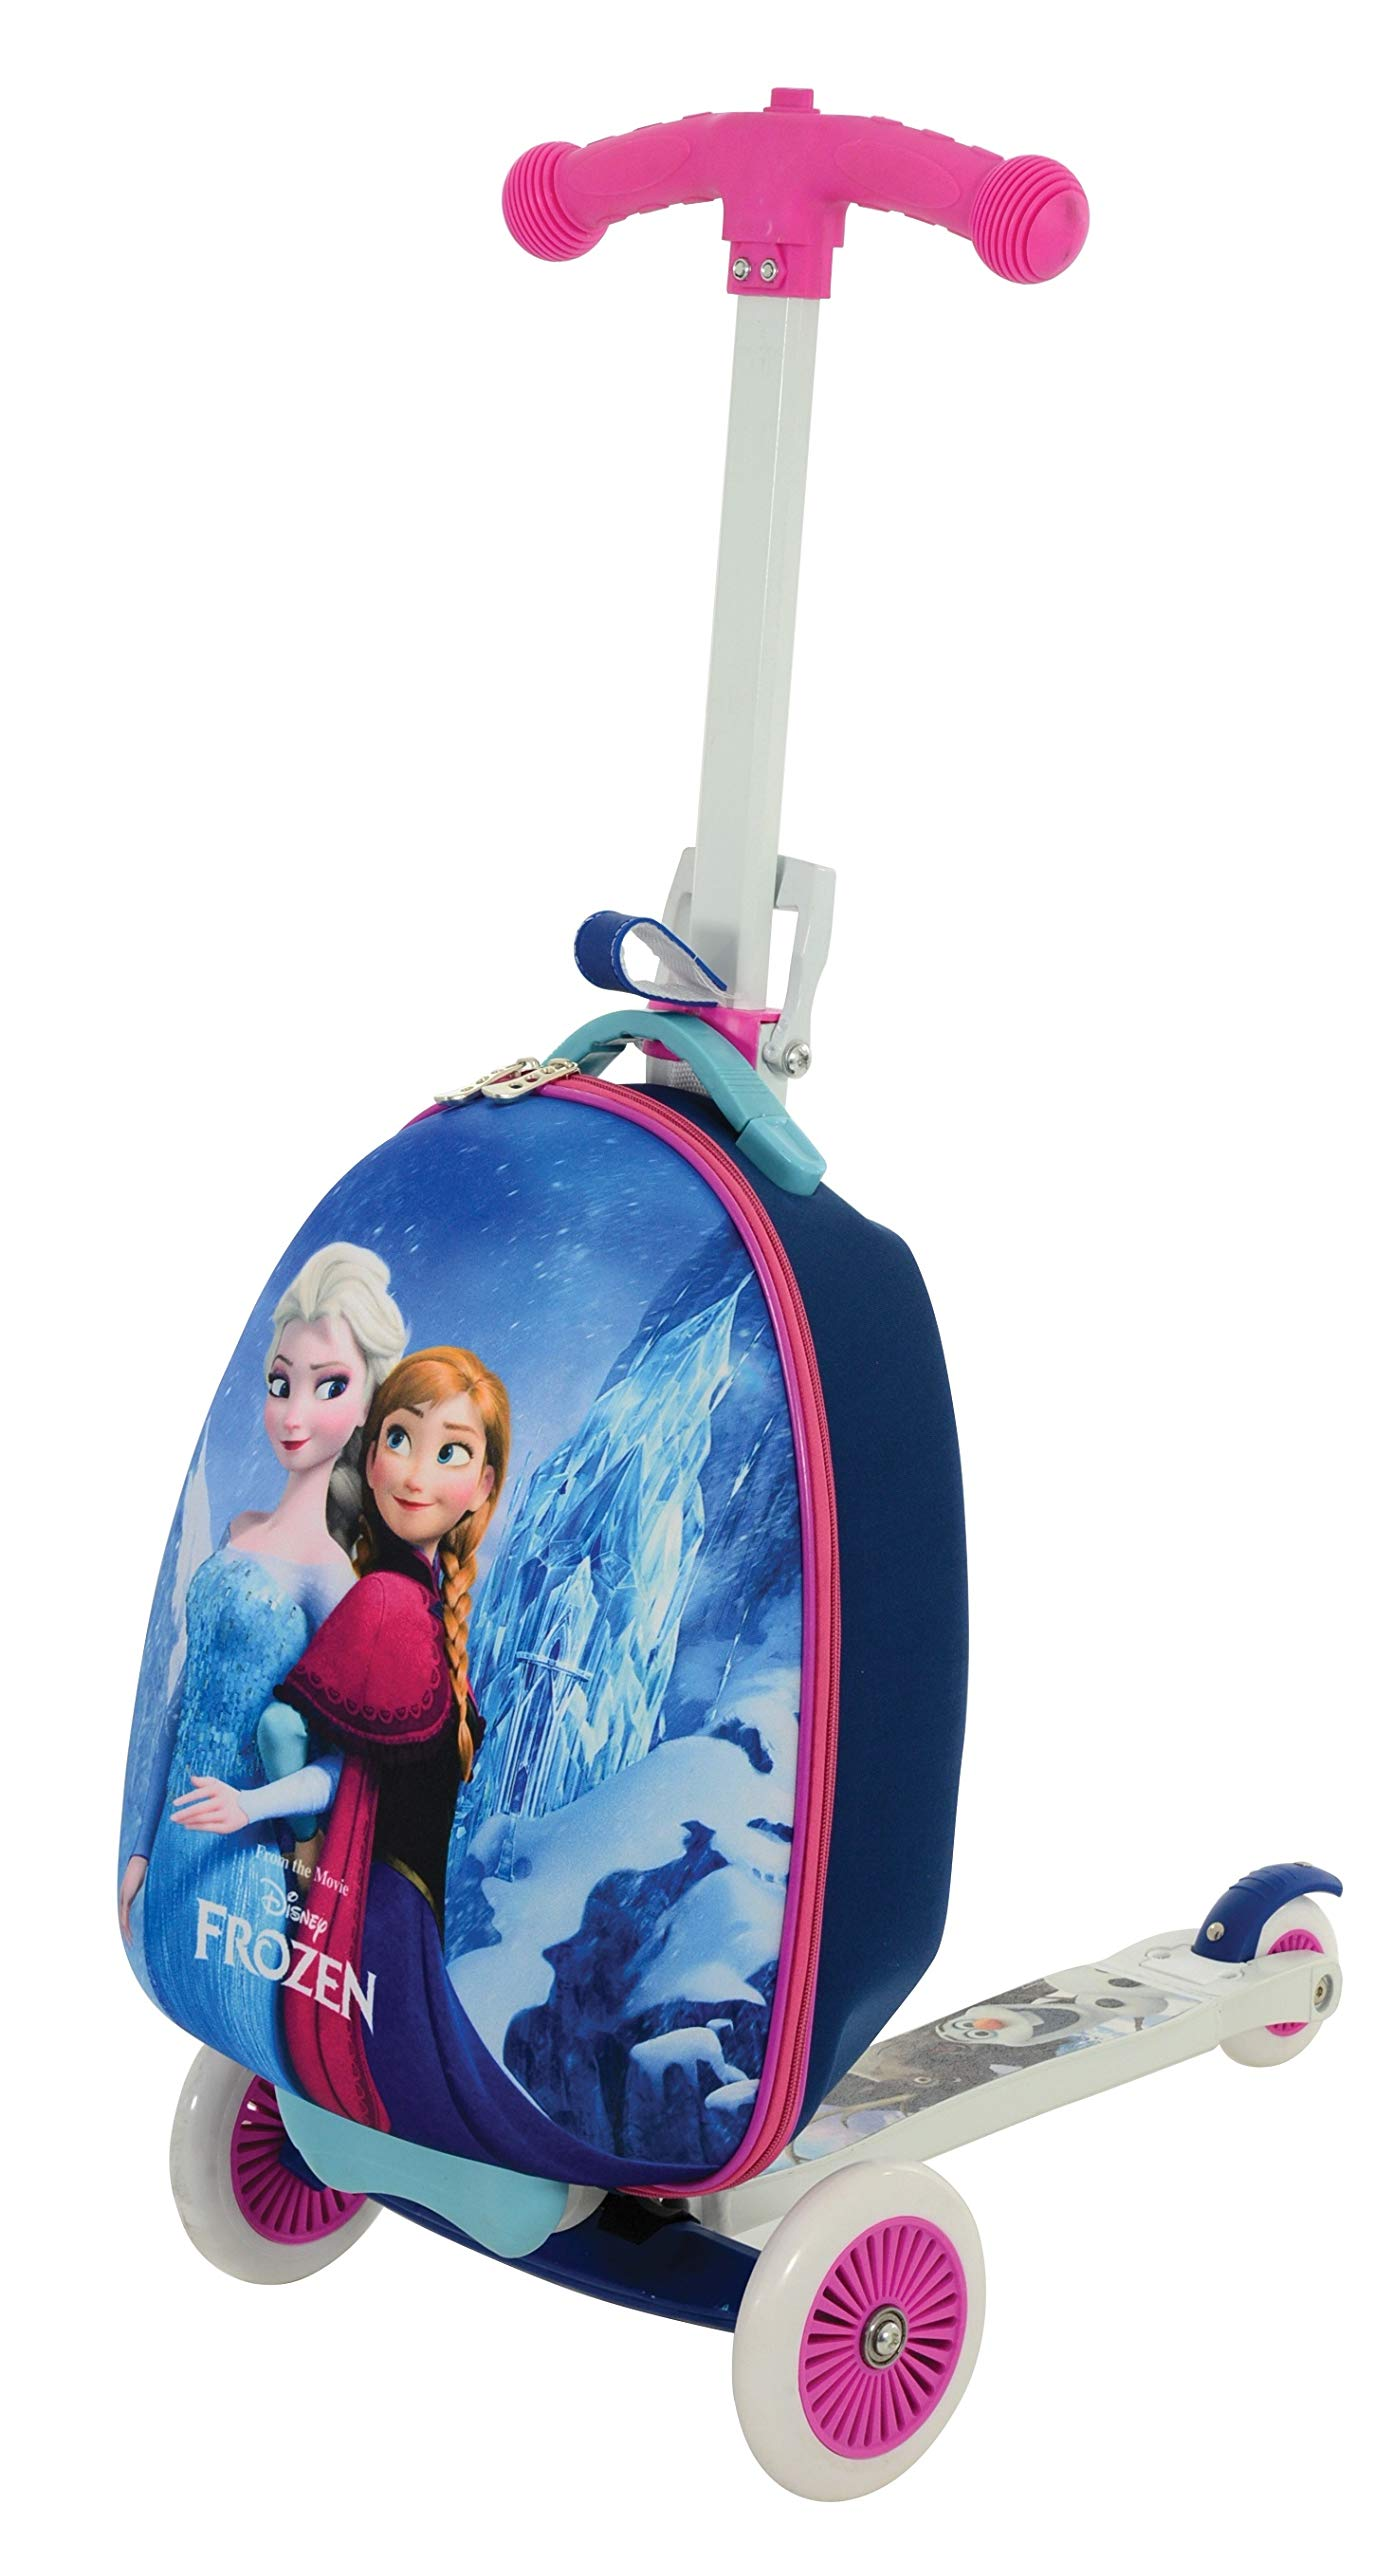 Disney Frozen 3-in-1 Scootin' Suitcase MV Sports Ages 3 Years+ by MV Sports